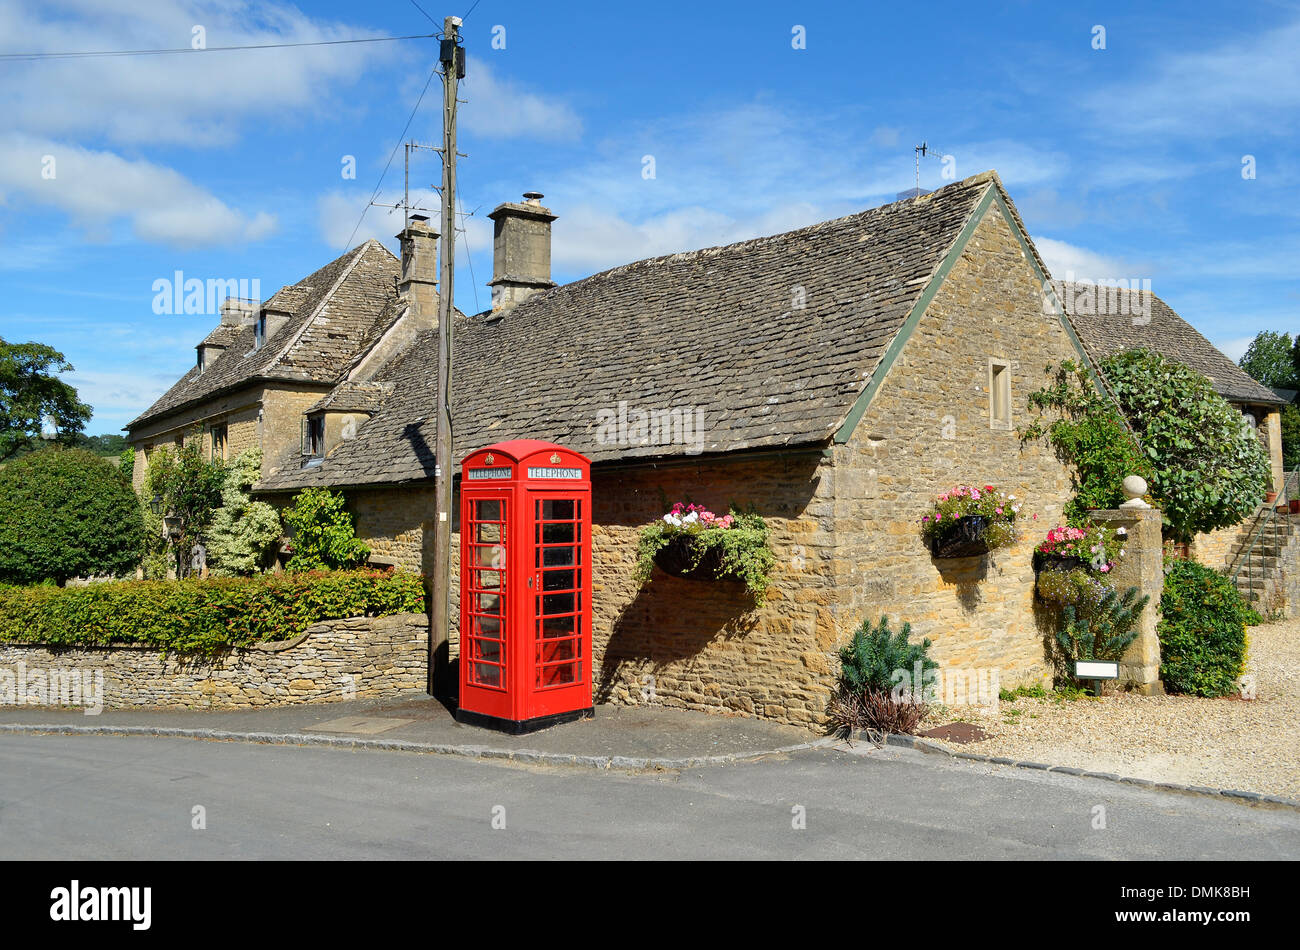 Honey coloured stone houses and a red telephone box in a village in the Cotswolds in rural England. - Stock Image